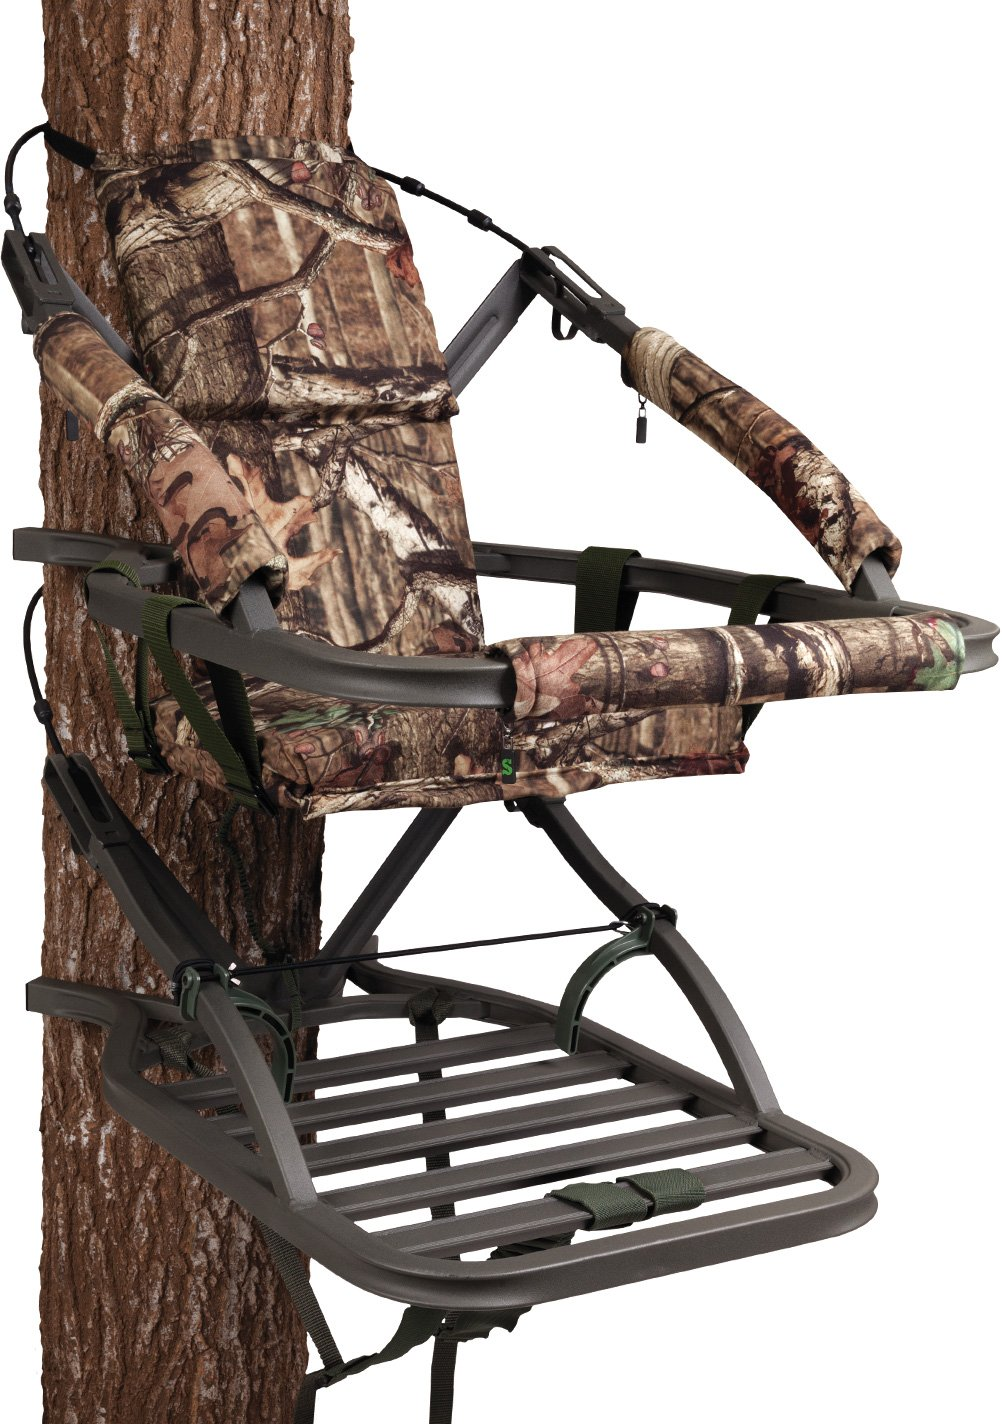 Summit Treestands SU81119 Goliath SD Climbing Treestand, Mossy Oak by Summit Treestands